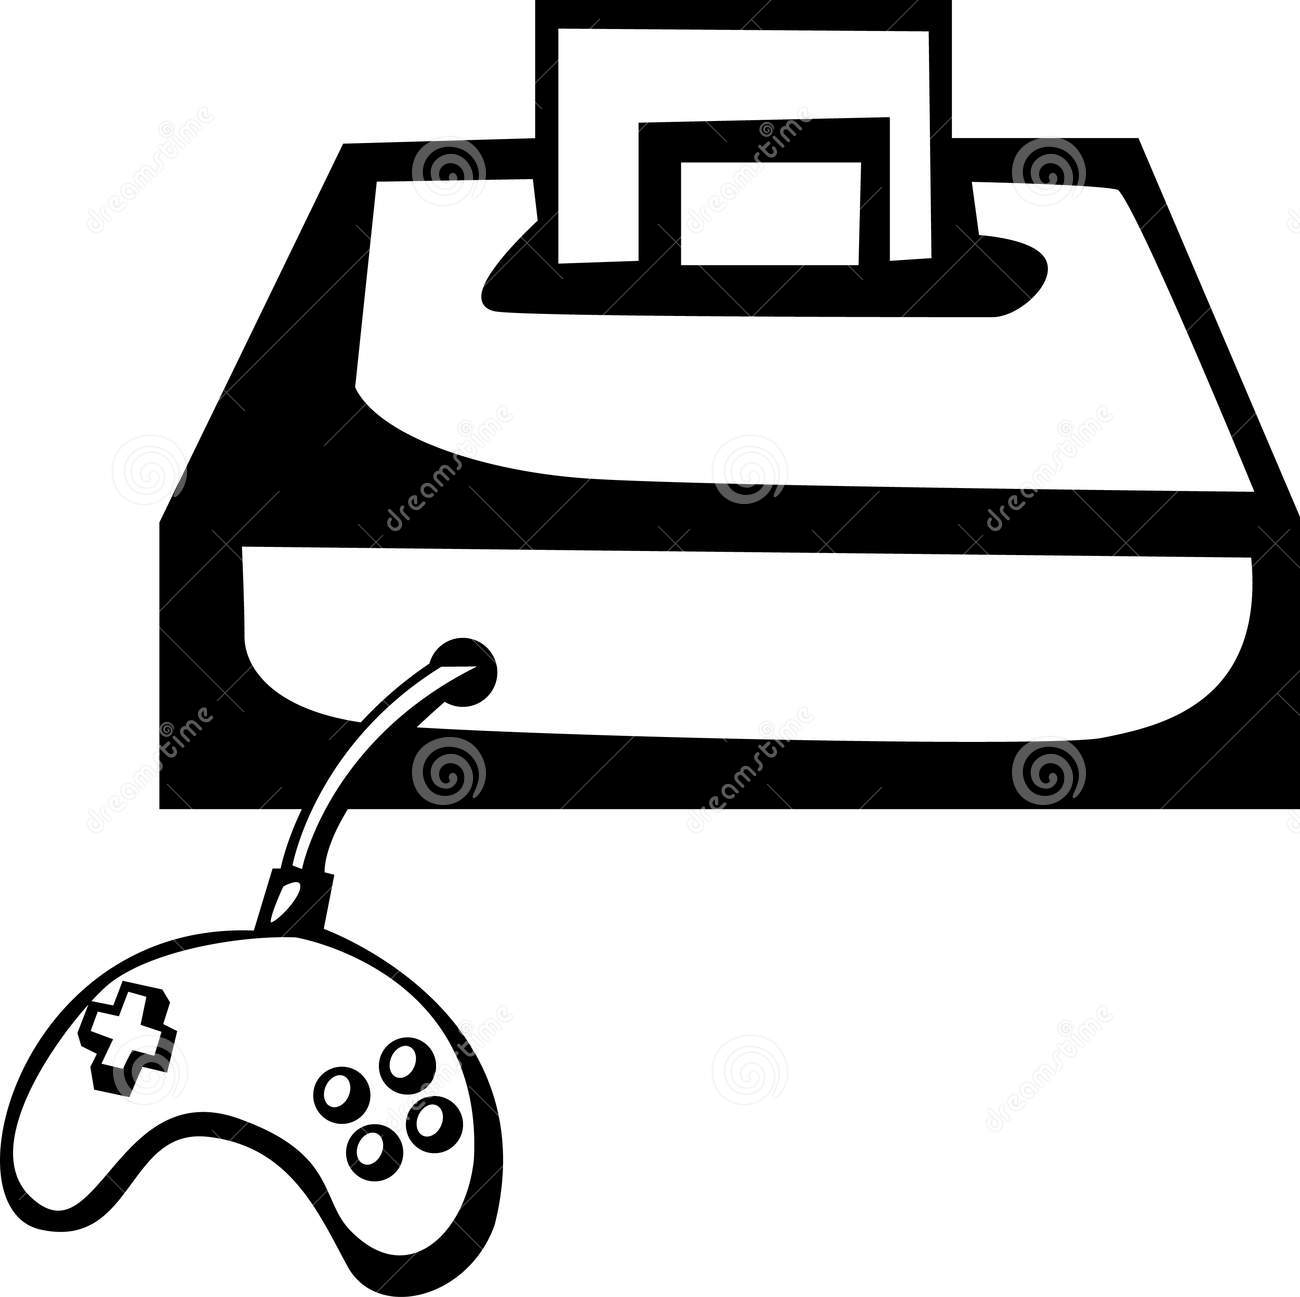 Video game consoe clipart.